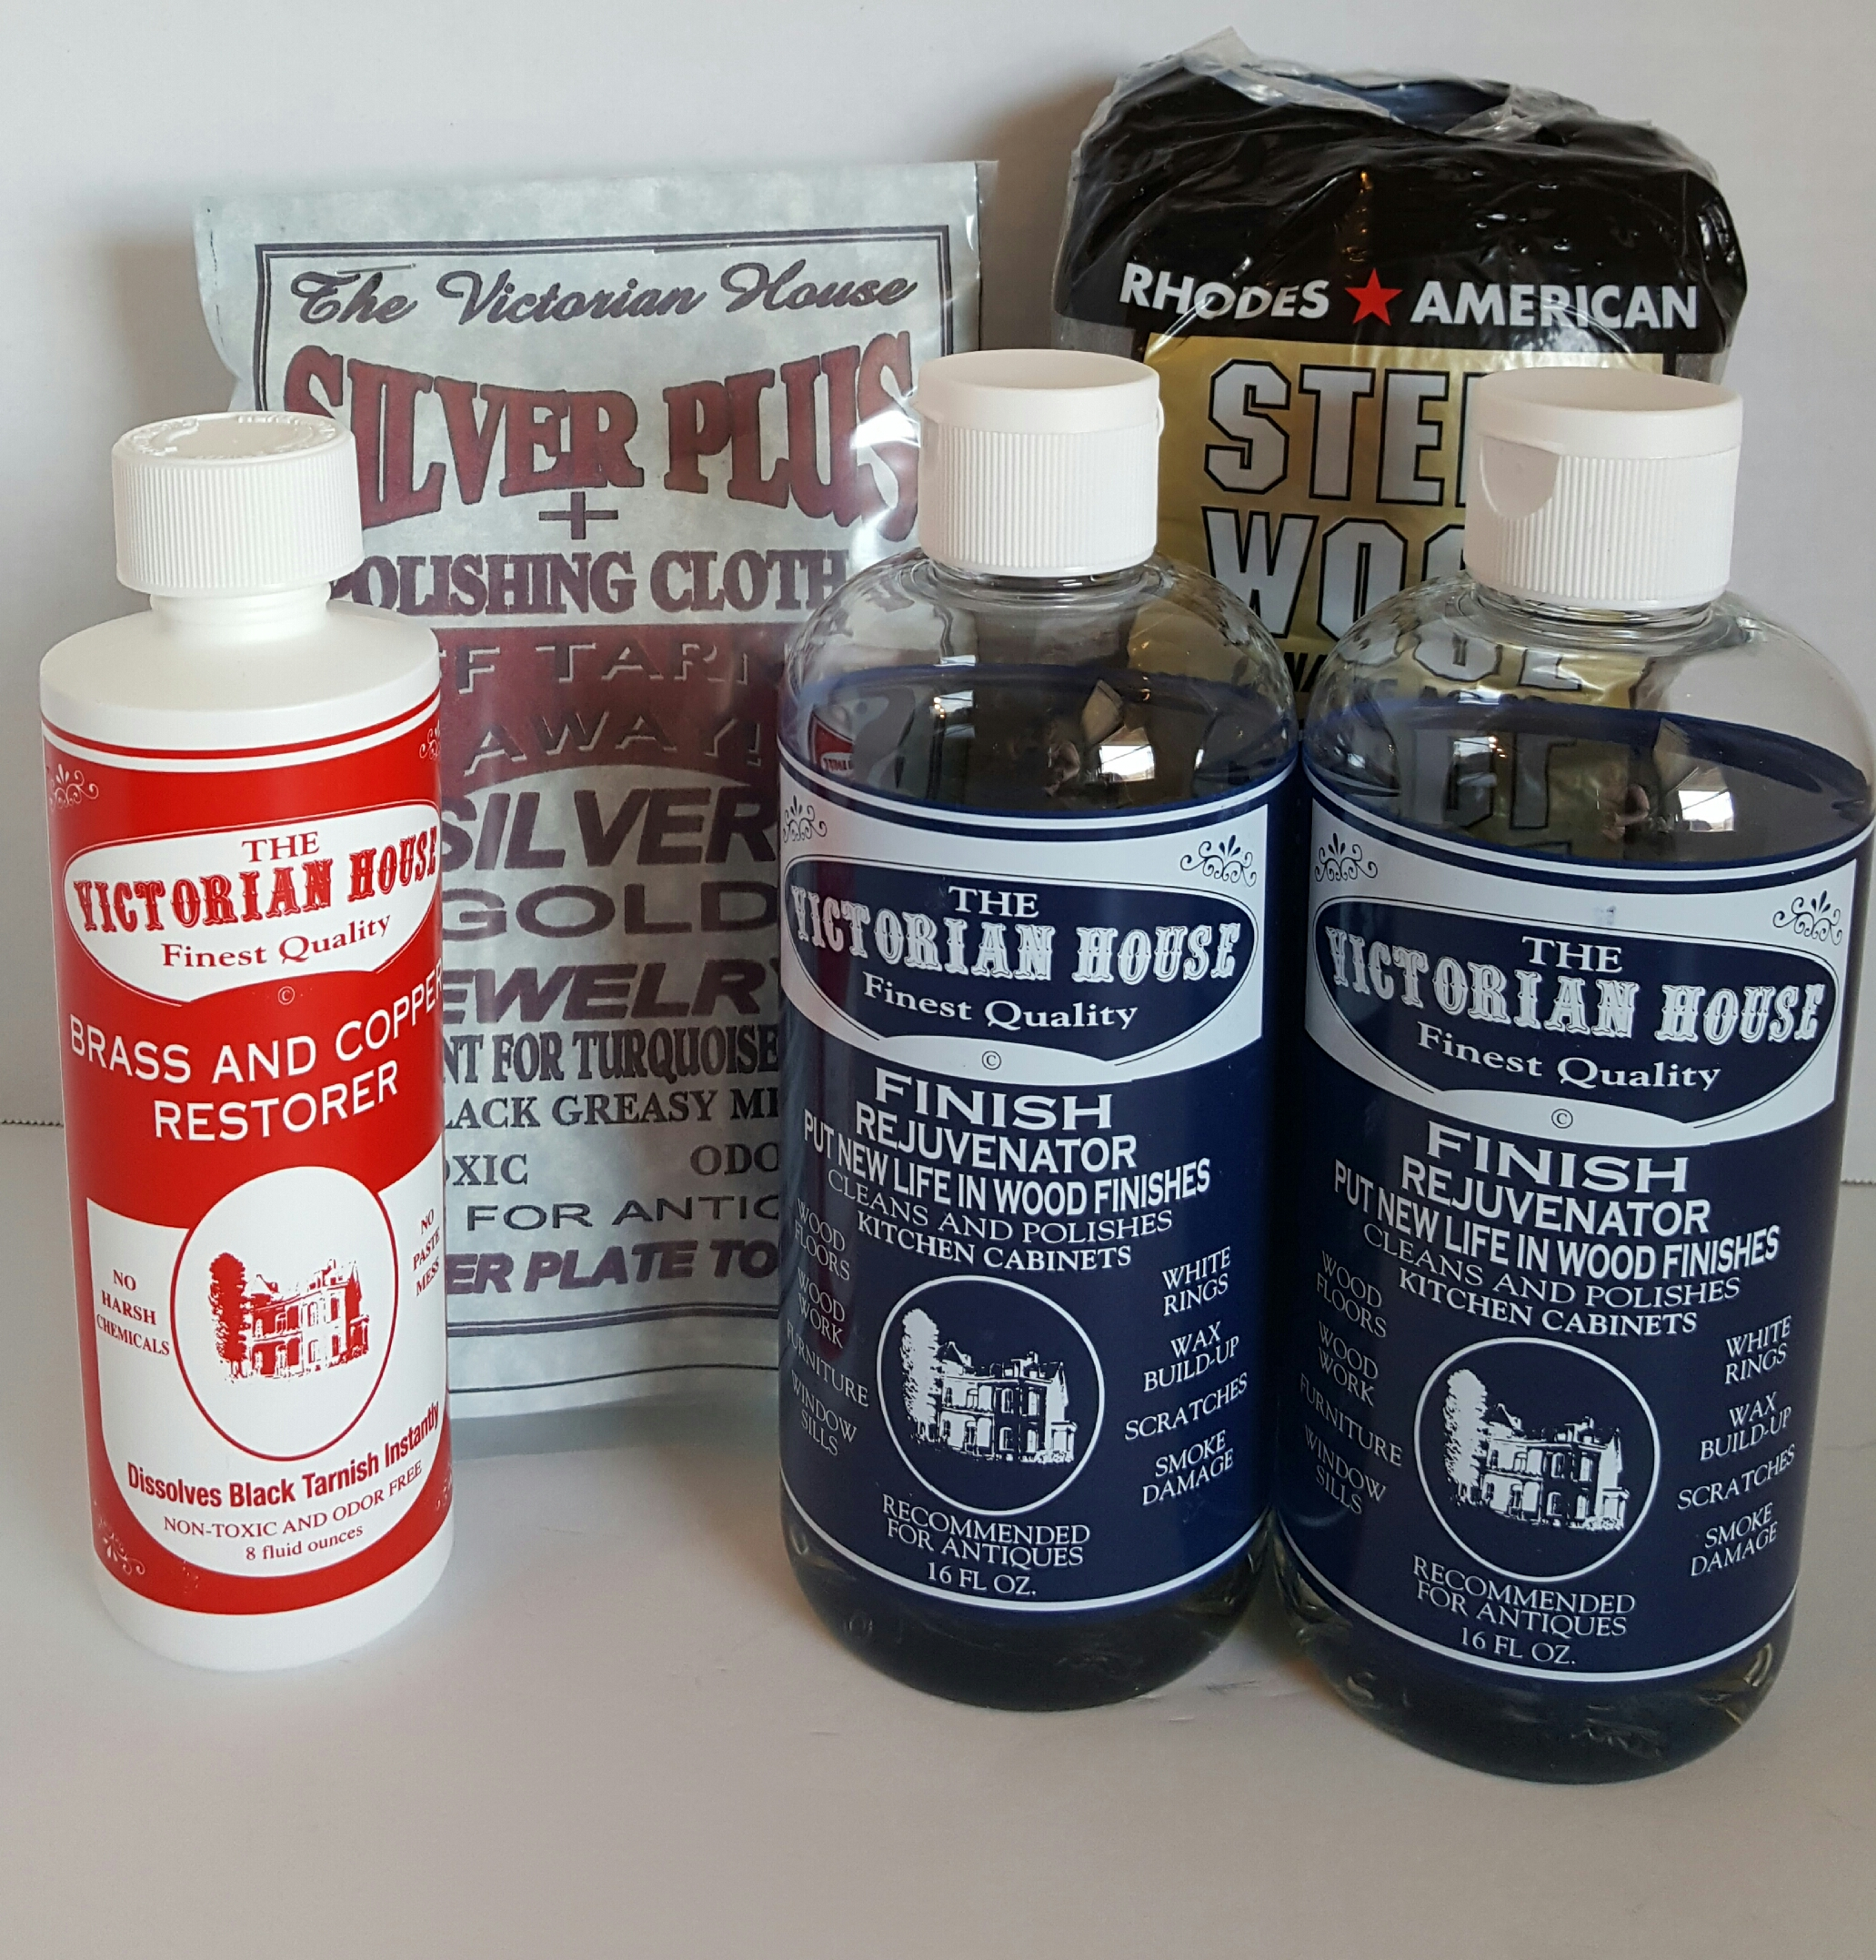 Kitchen Cabinet, Furniture And Antique Cleaner And